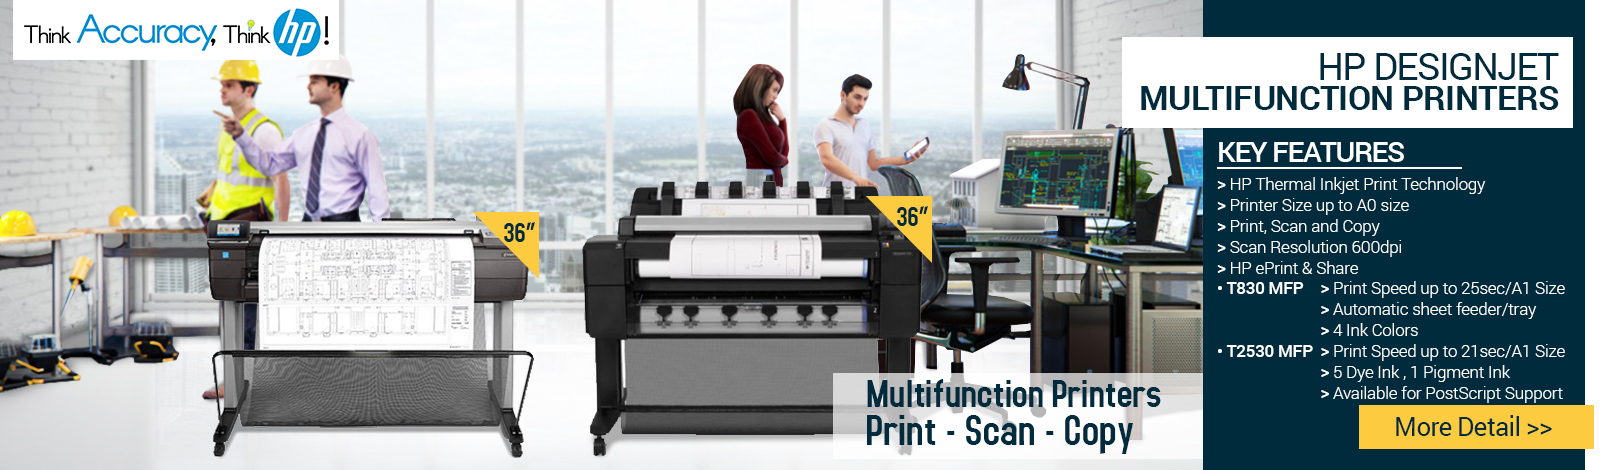 hp designjet multifunction printers